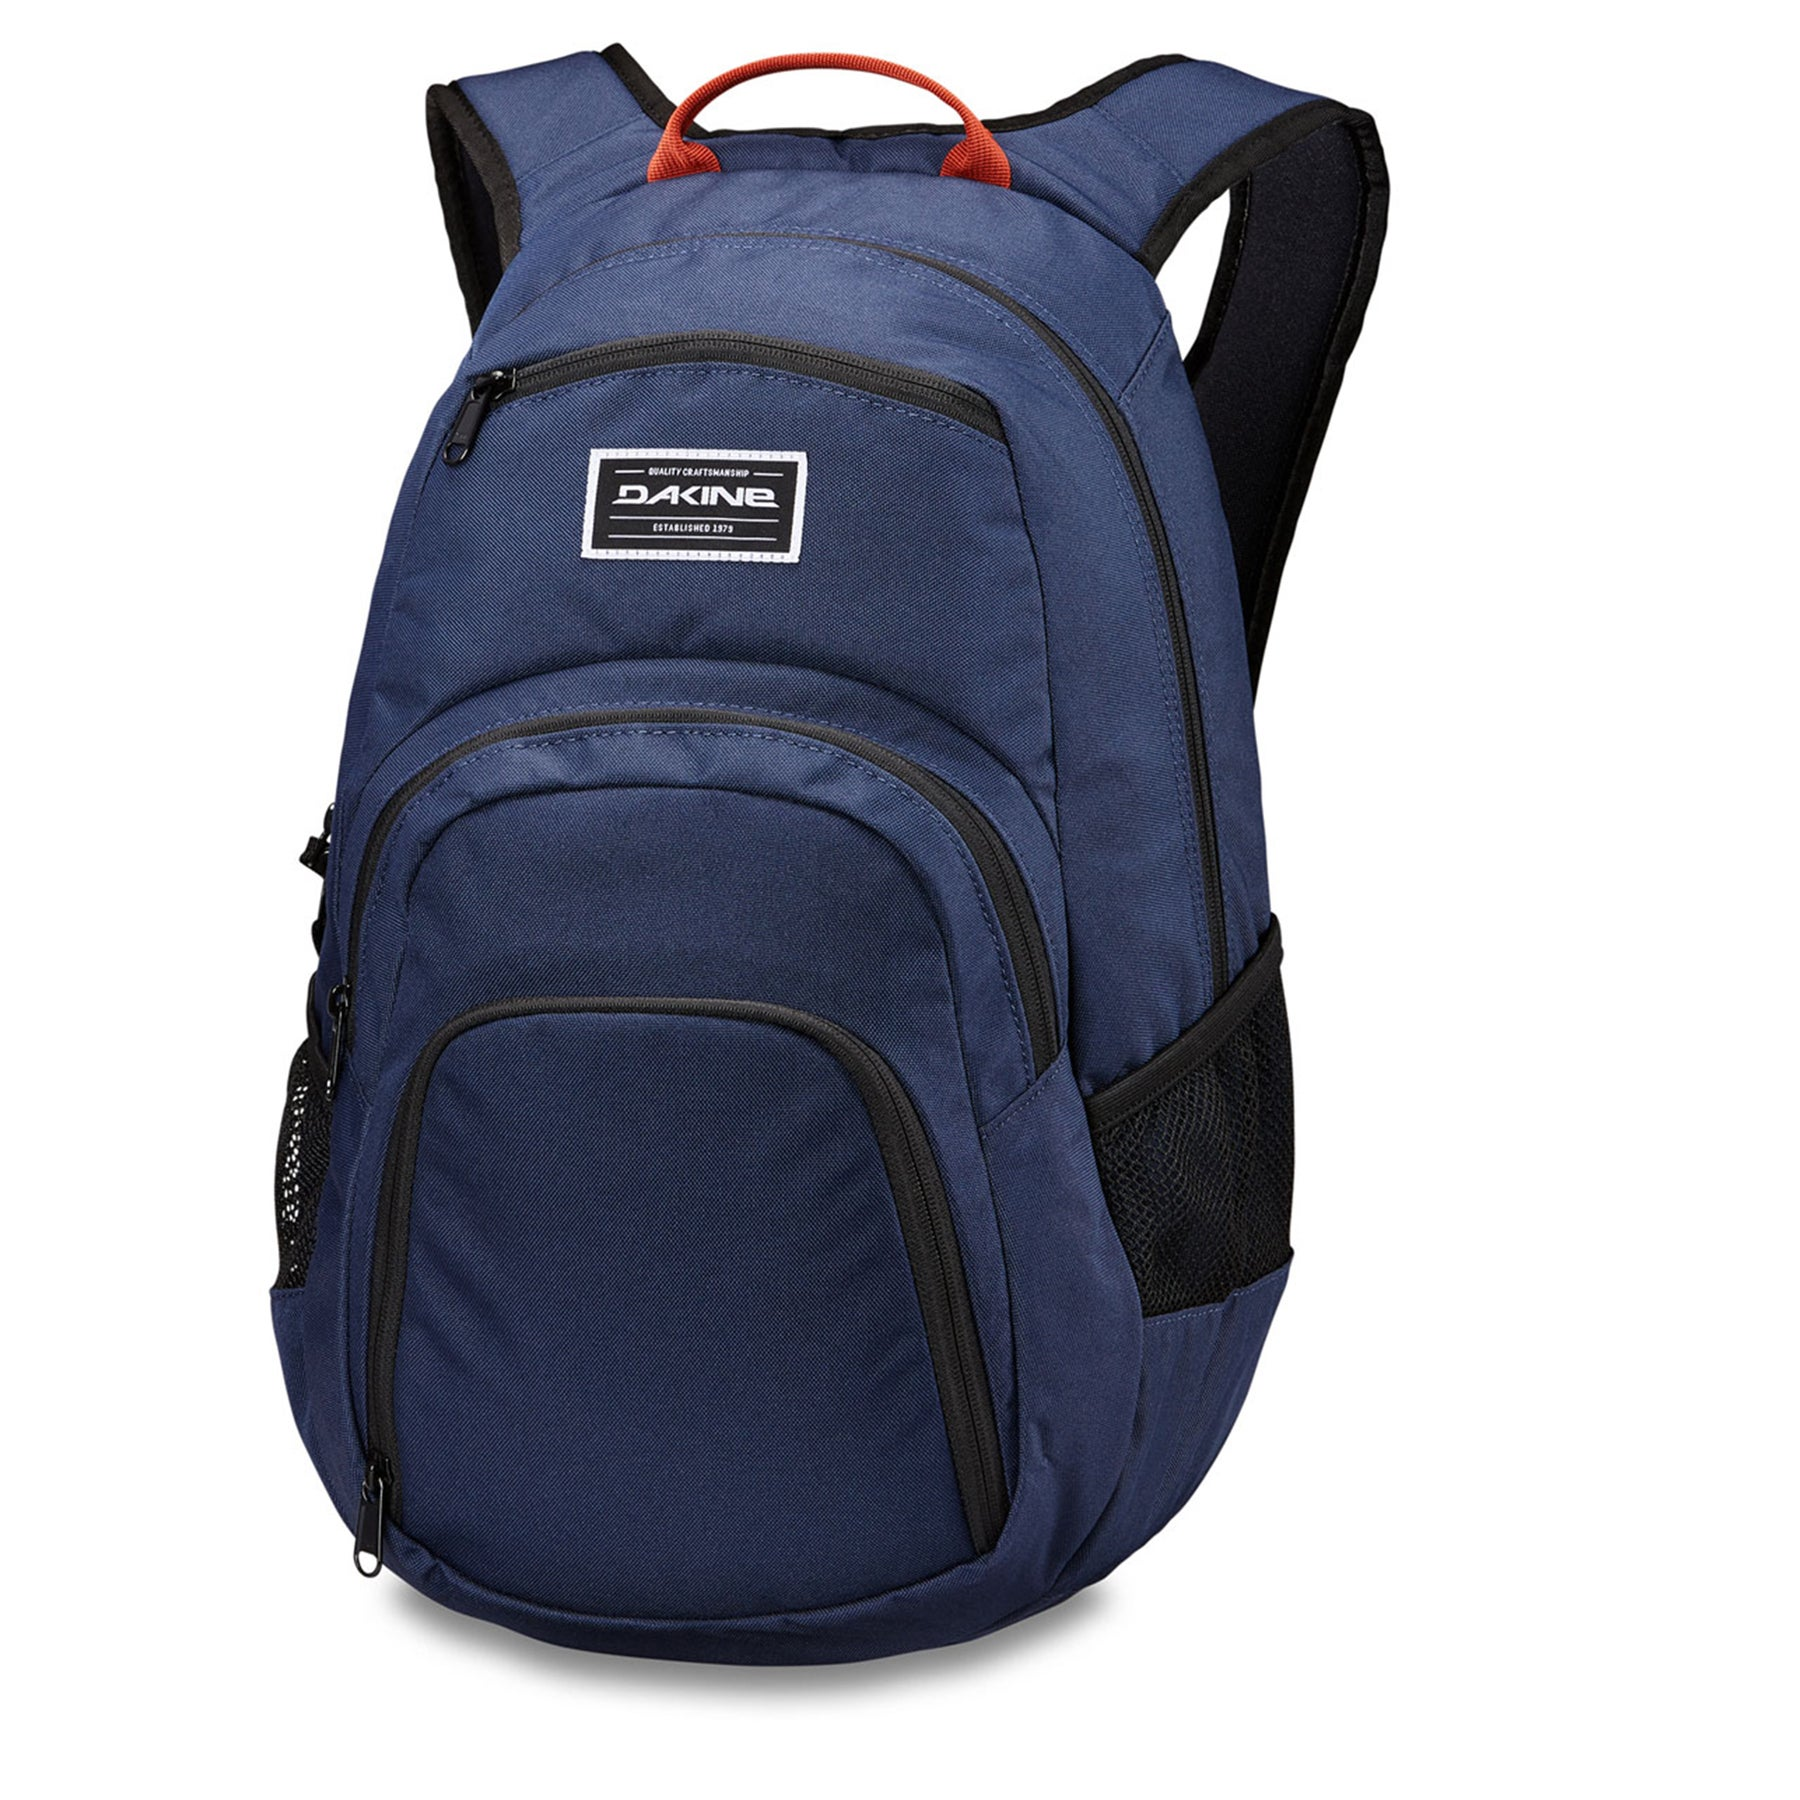 Dakine Campus Standard 25L Backpack - Dark Navy